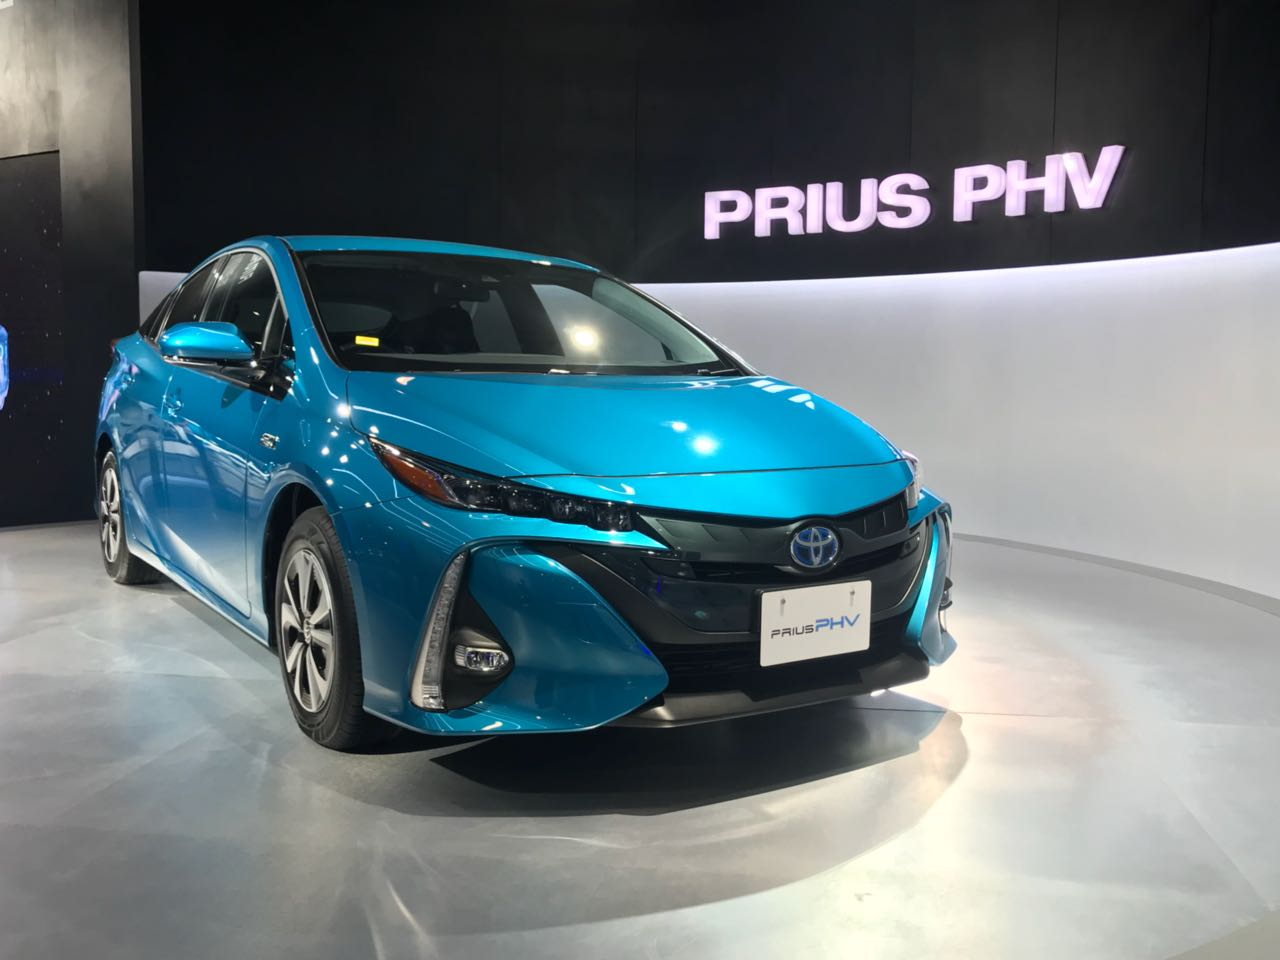 <p>The Toyota Prius PHV (Plug-in Hybrid Vehicle) at Hall no. 9, Stand no. N3</p>